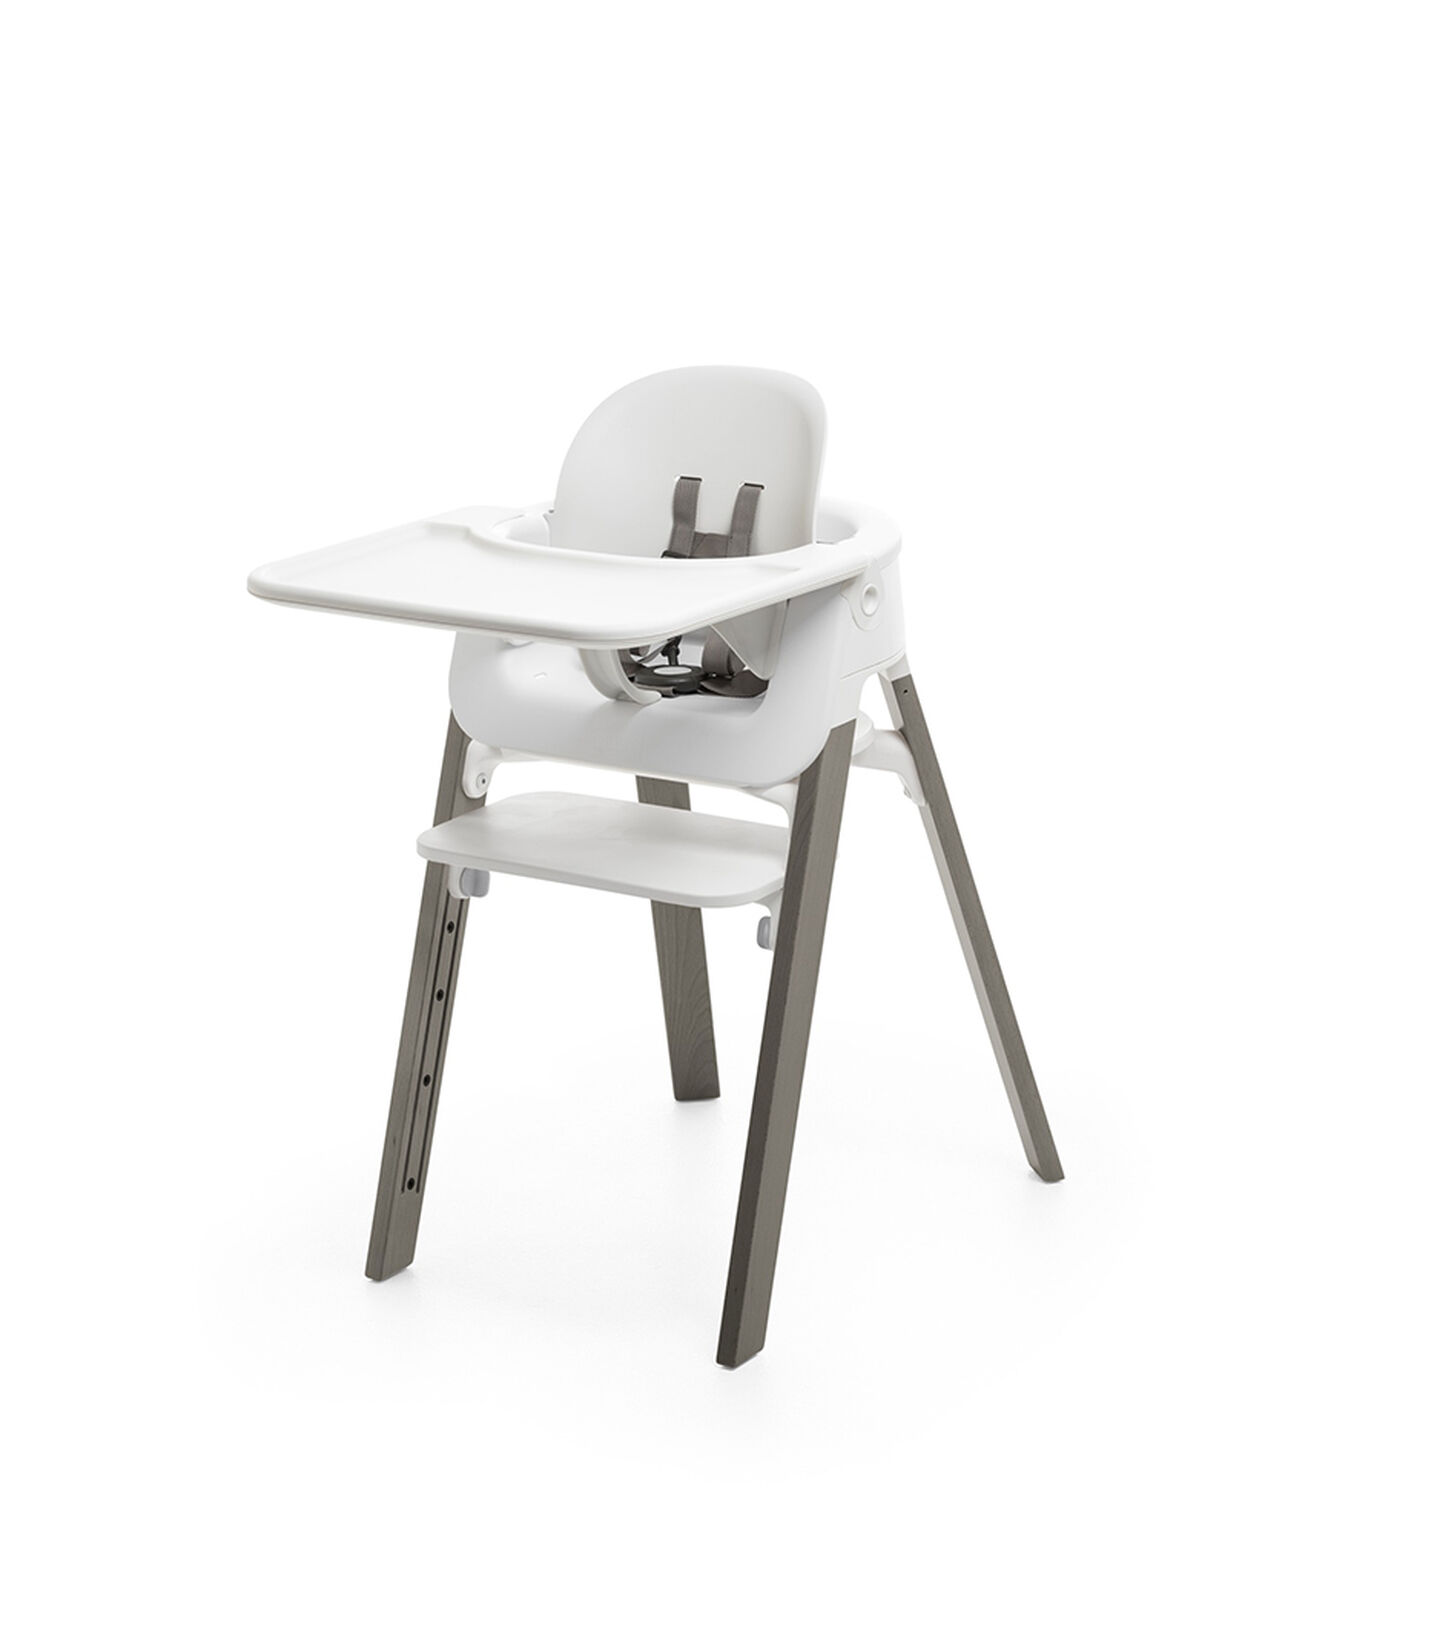 Accessories. Tray, Baby Set. Mounted on Stokke Steps highchair.